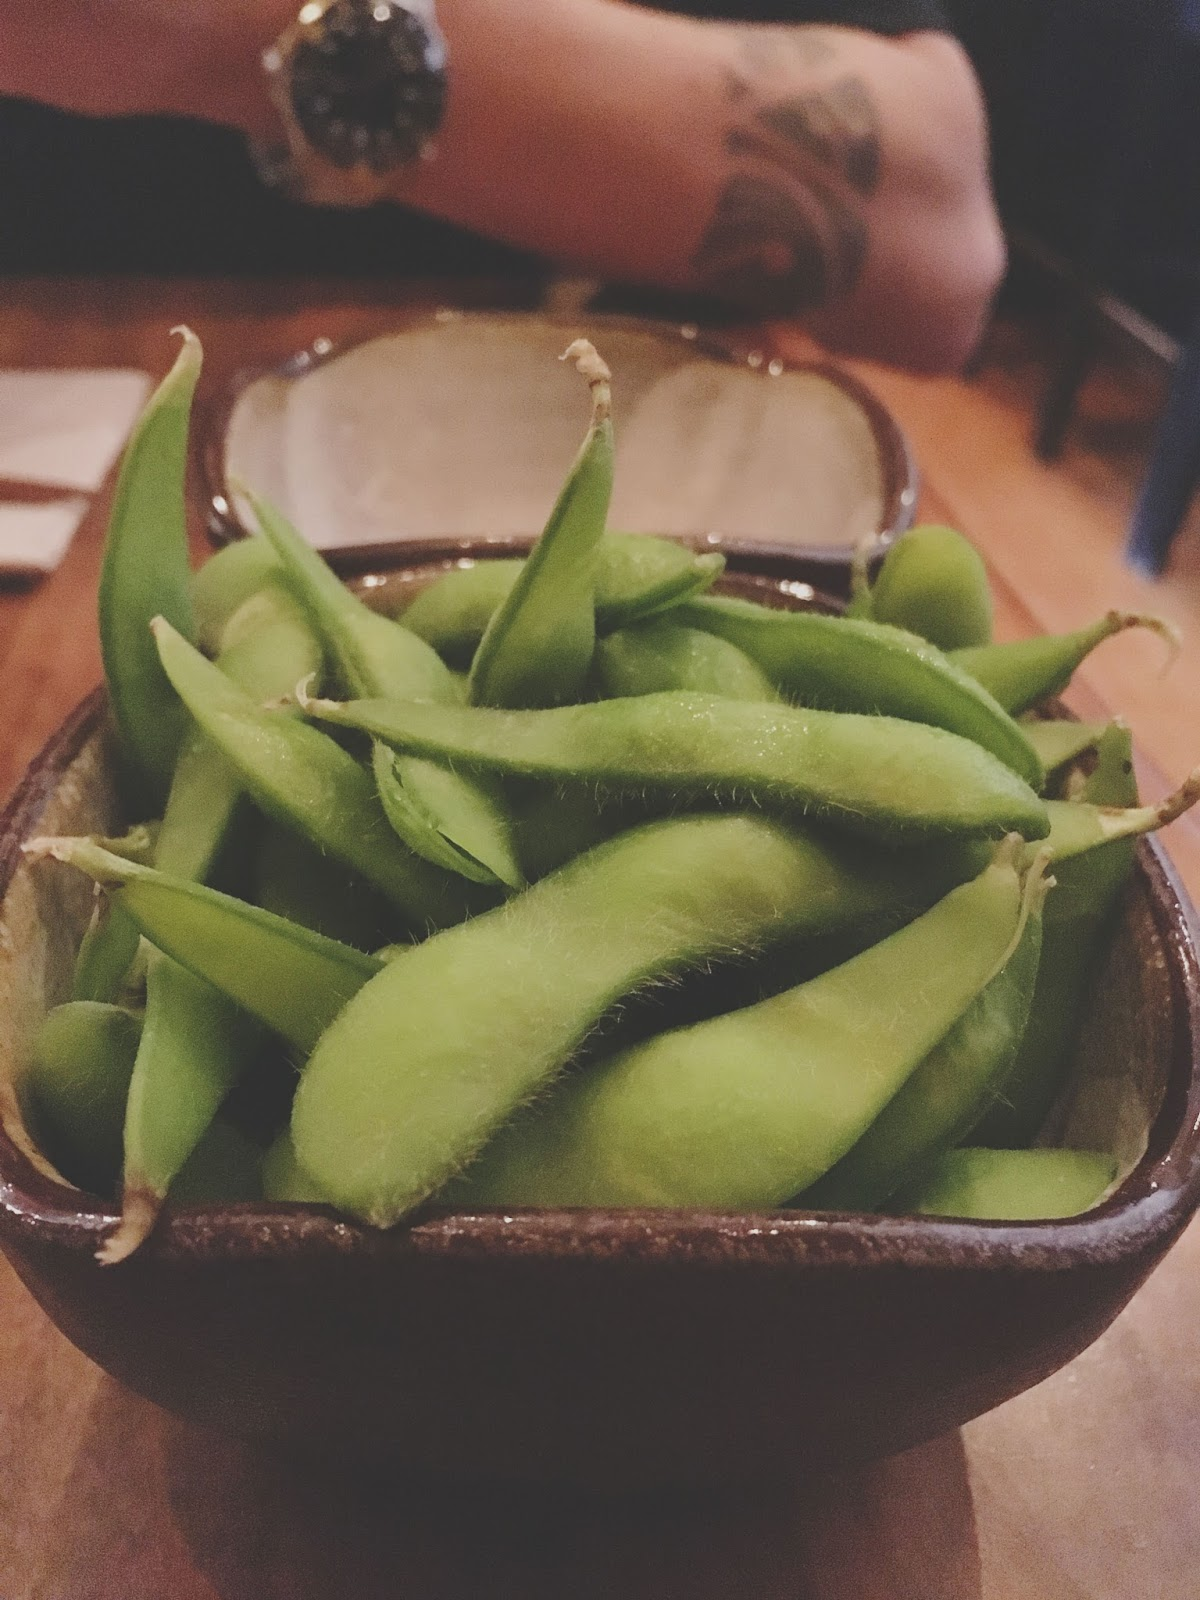 edamame at Saru Sushi - a restaurant in San Francisco